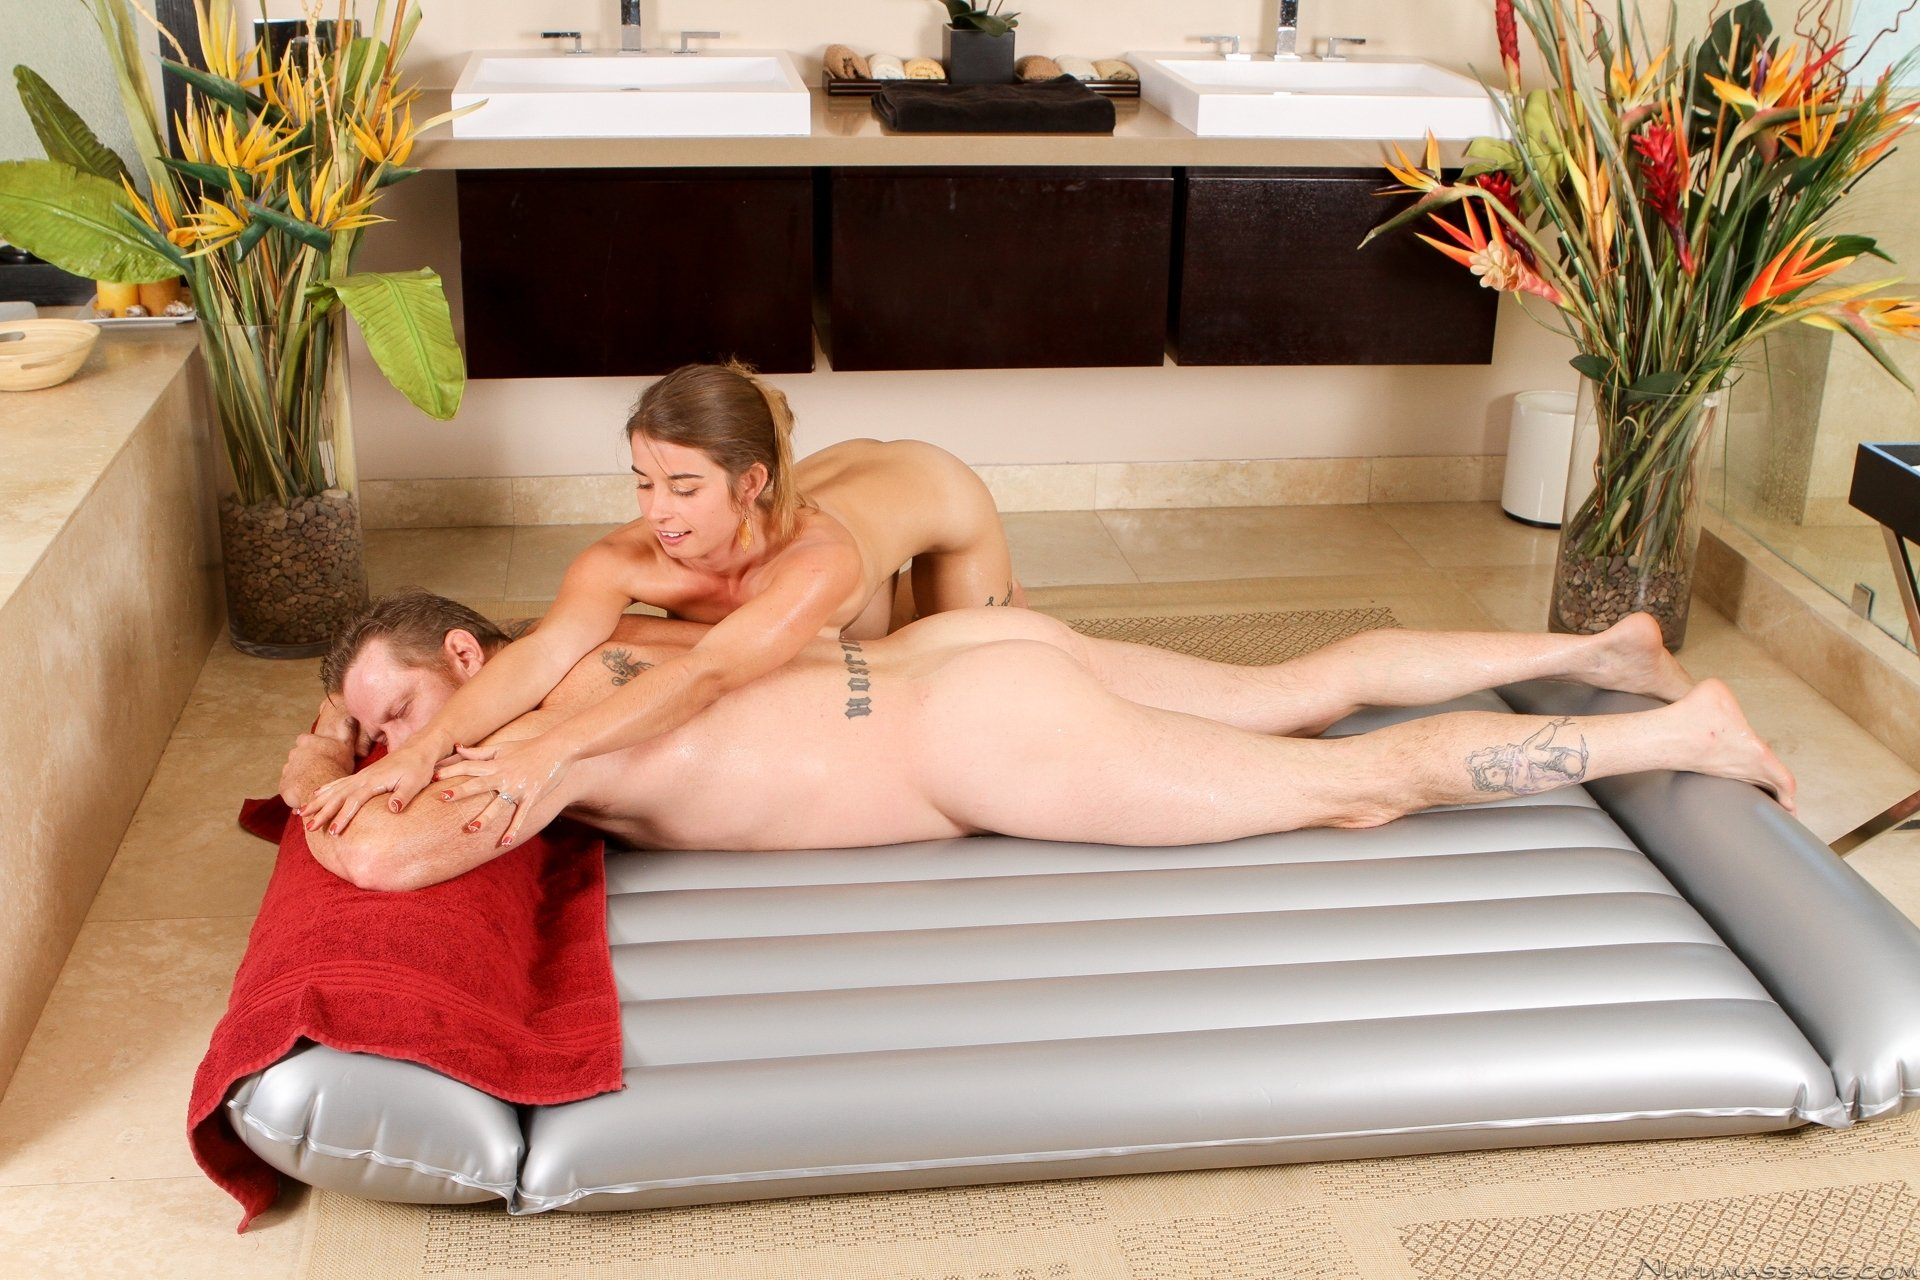 best way to do anal first time there